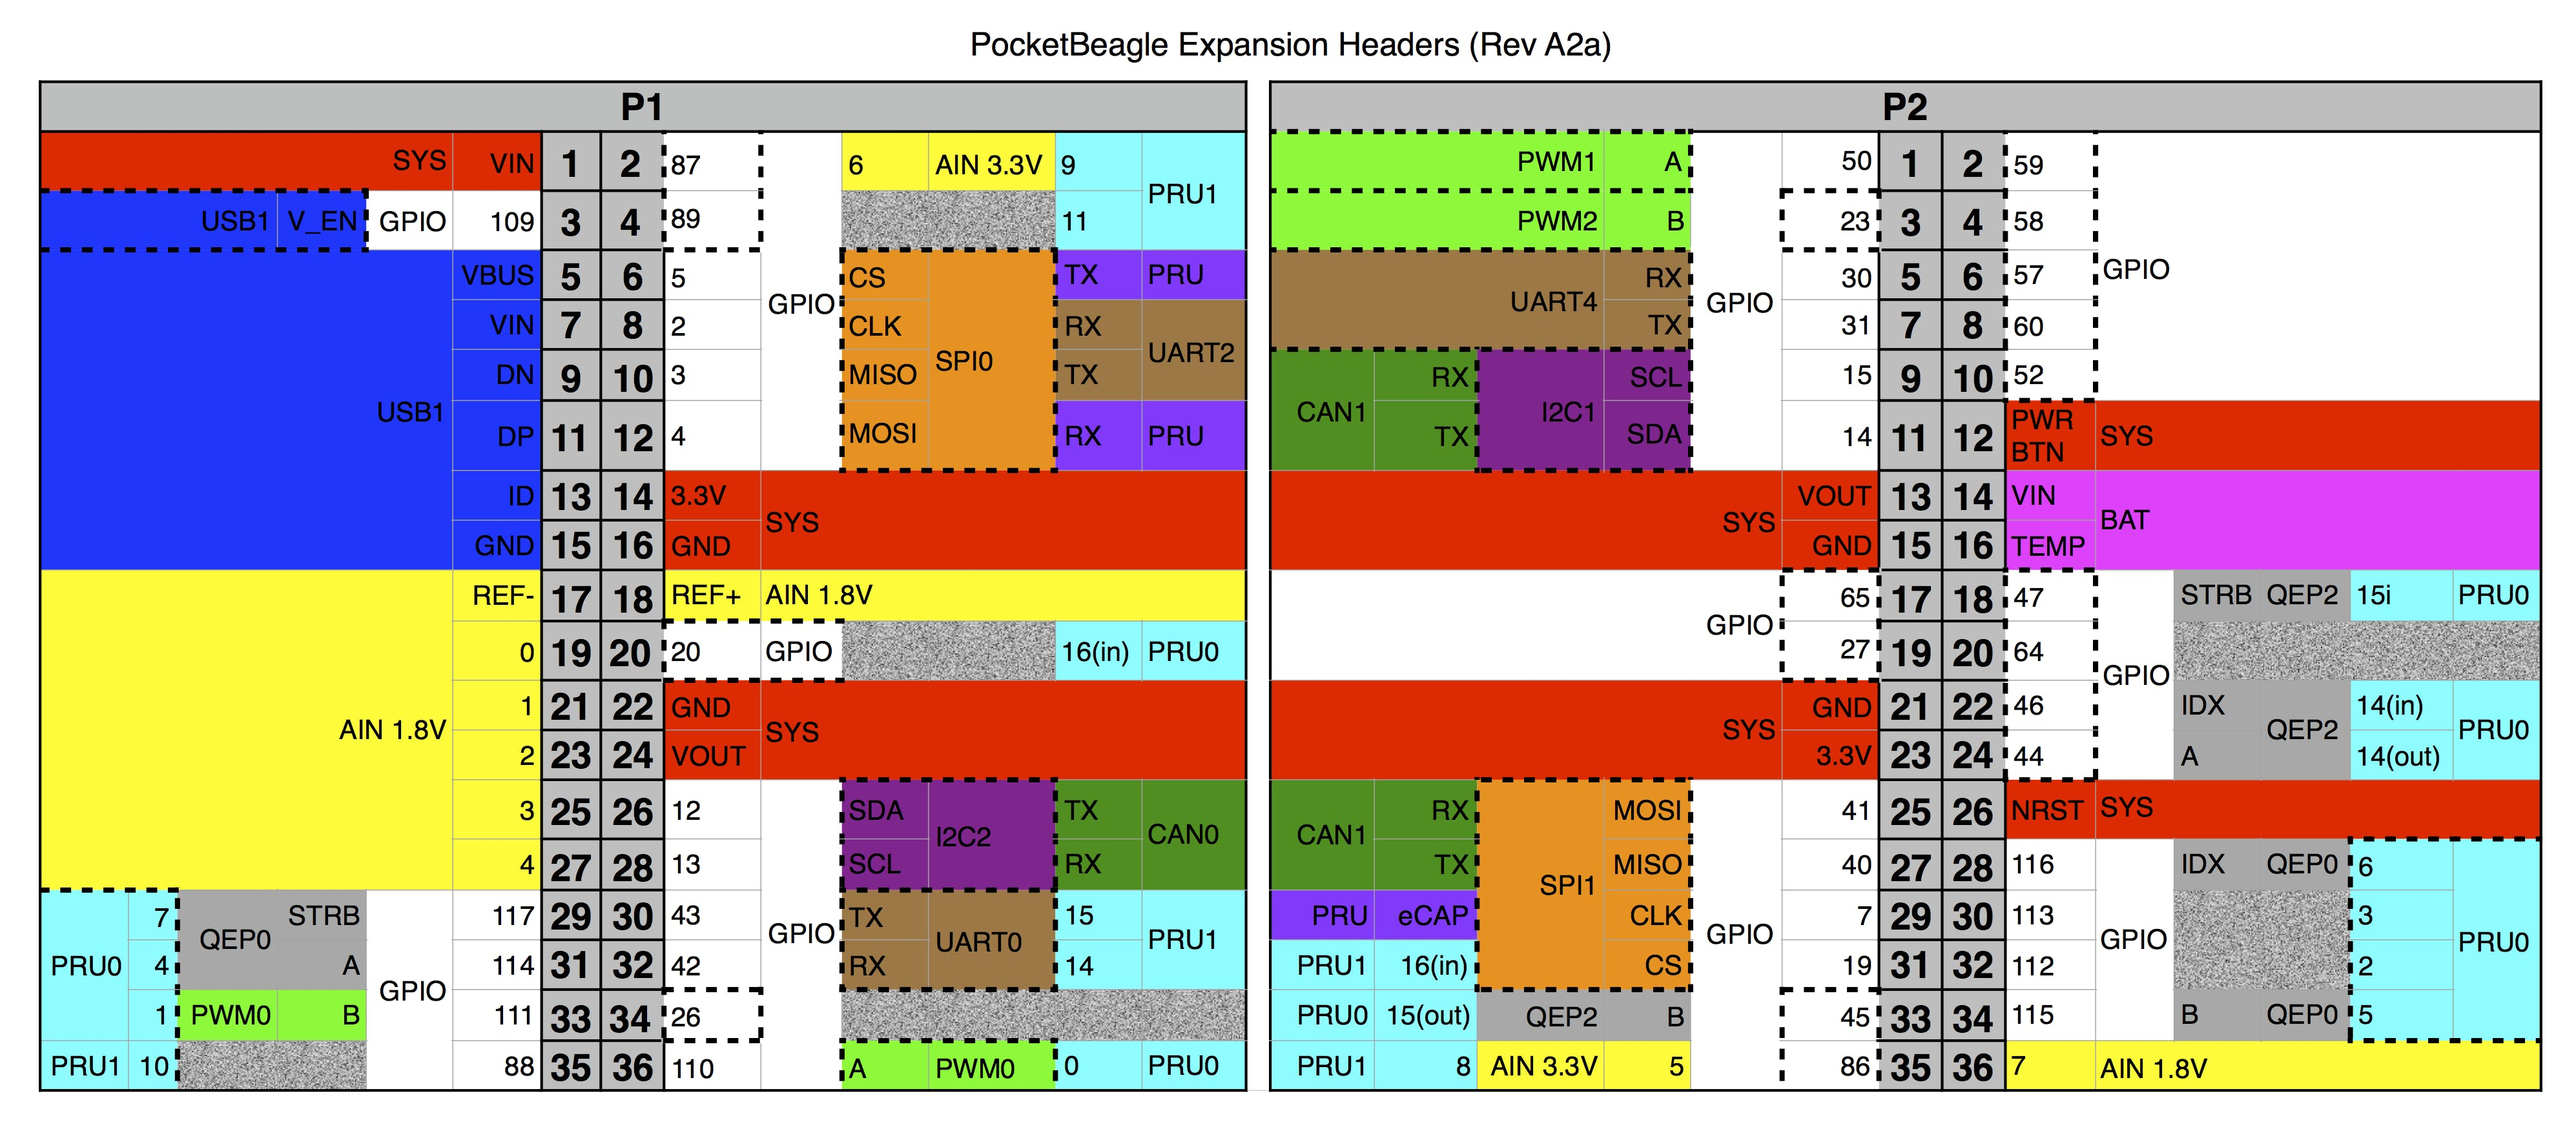 Pinout diagram of the PocketBeagle's headers. USB=blue, Power=yellow, GPIO=white, PRU=cyan, SPI=orange, UART=brown, and other colors are miscellaneous.